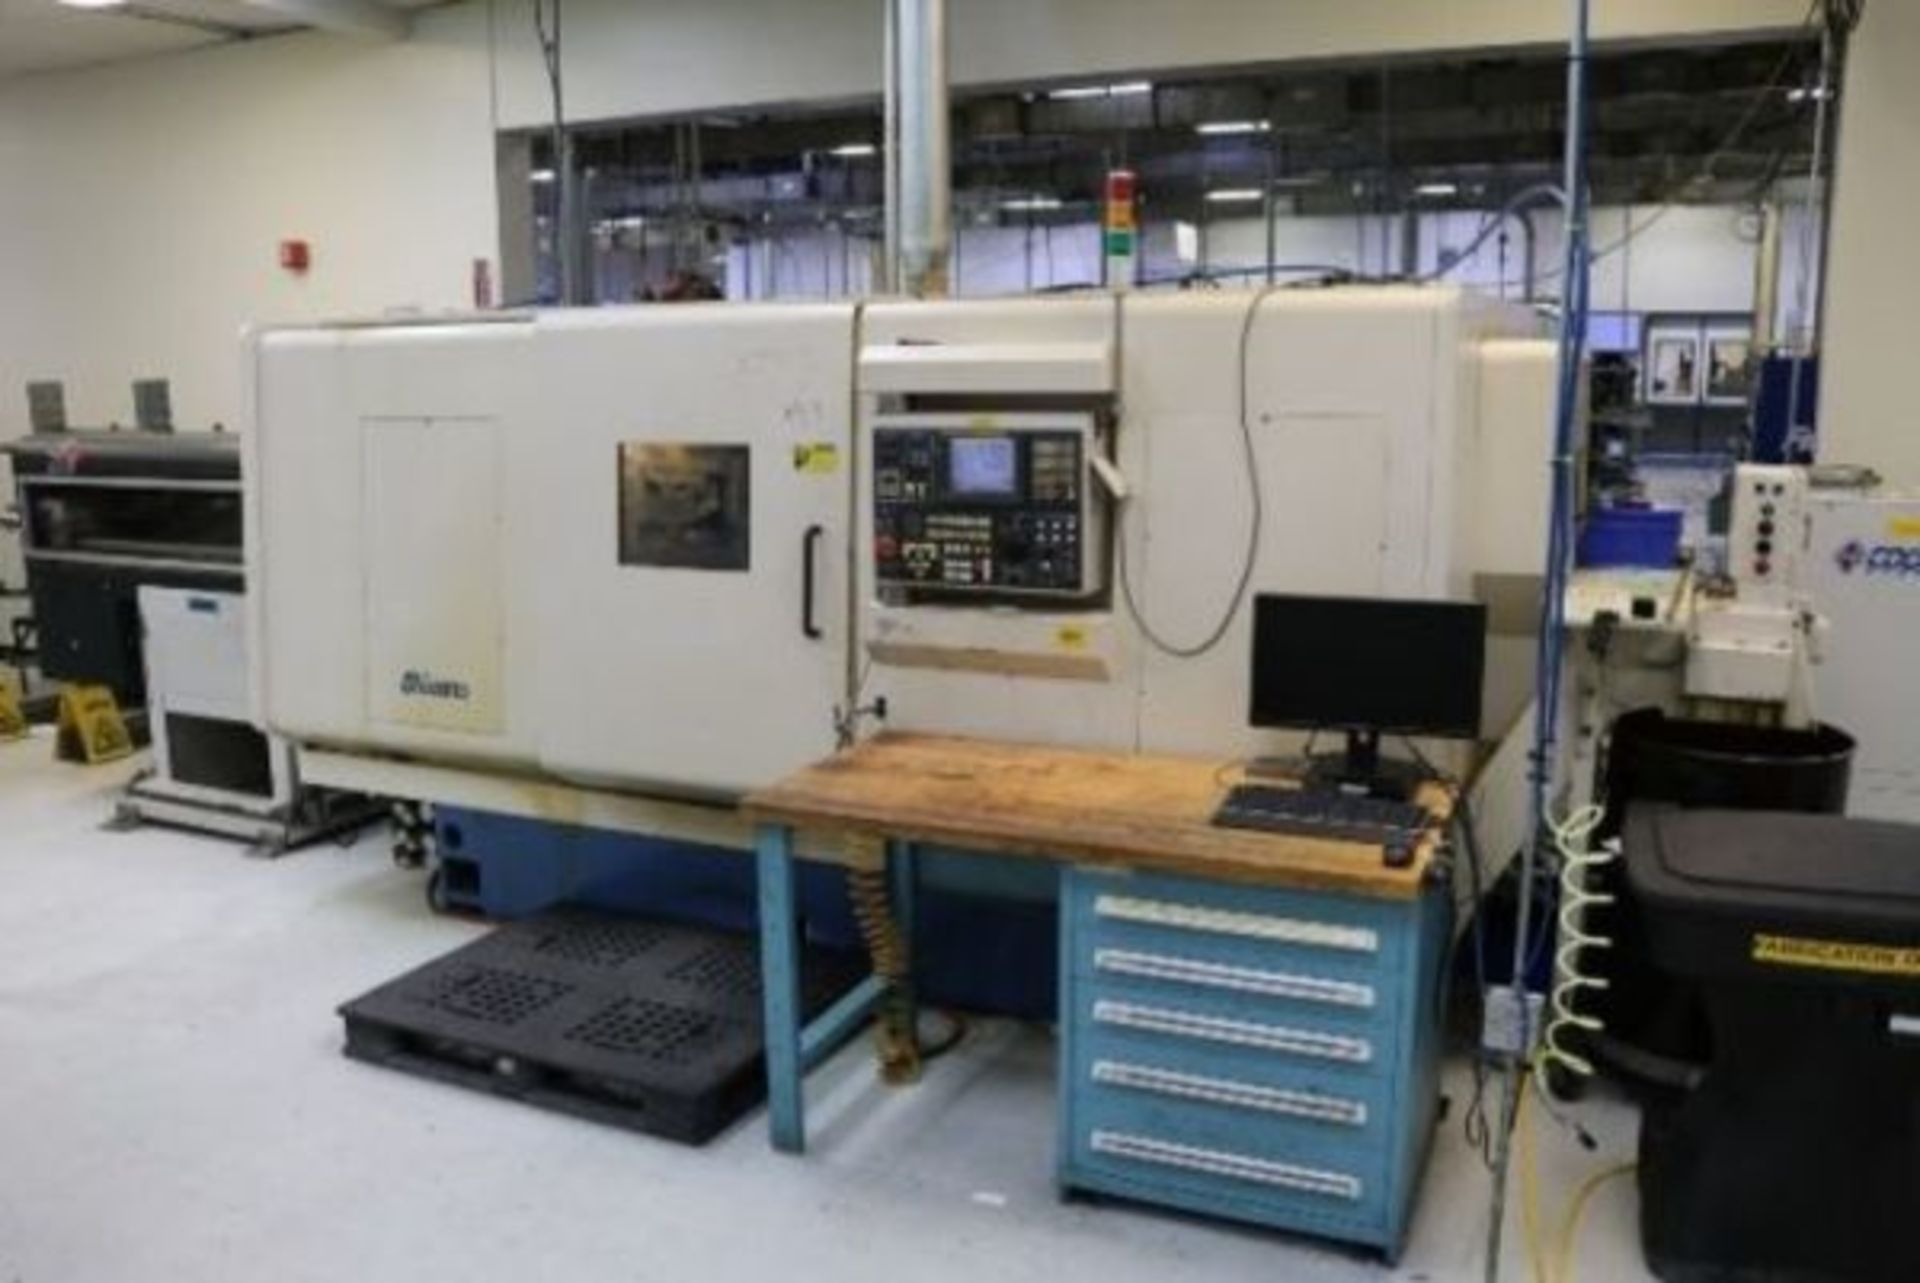 """Lot 3 - 2005 MIYANO BNE-64SY2 CNC MULTI-AXIS TURNING CENTER, 2-TURRETS, Y-AXIS, SUB-SPINDLE, 8"""" CHUCK SIZE,"""